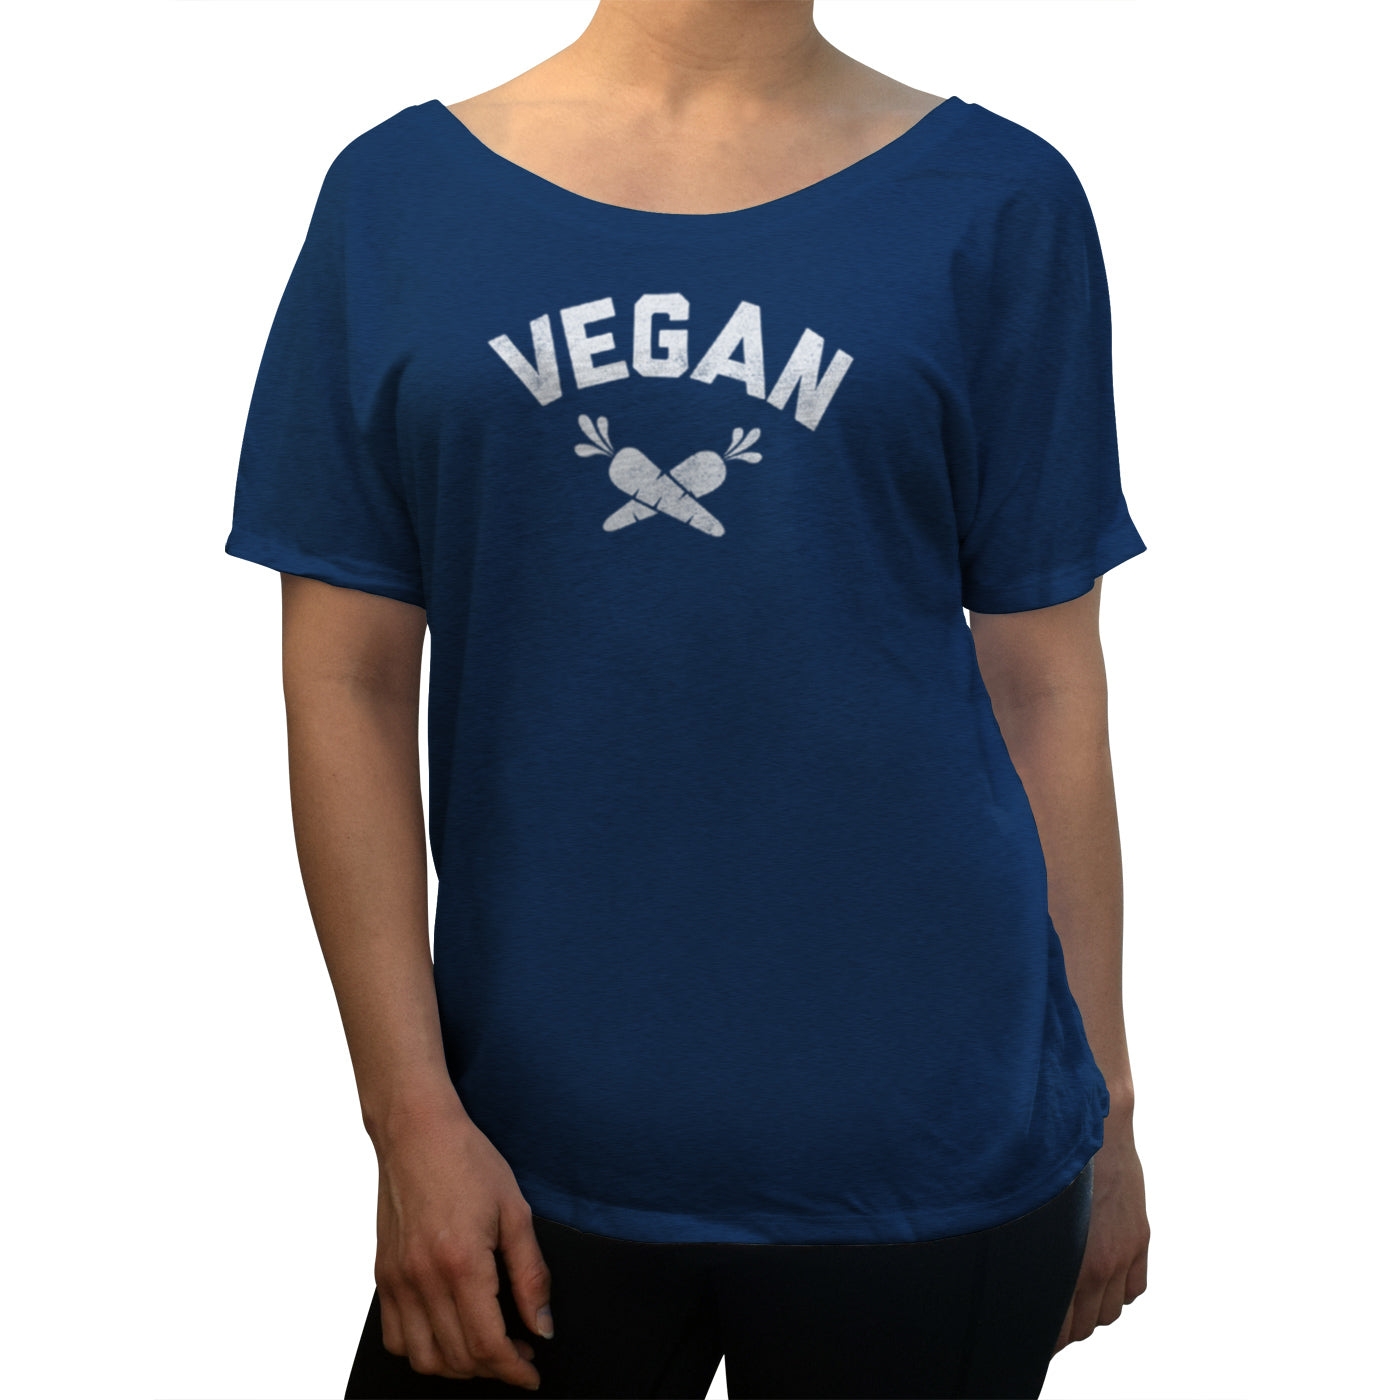 Women's Team Vegan Scoop Neck T-Shirt